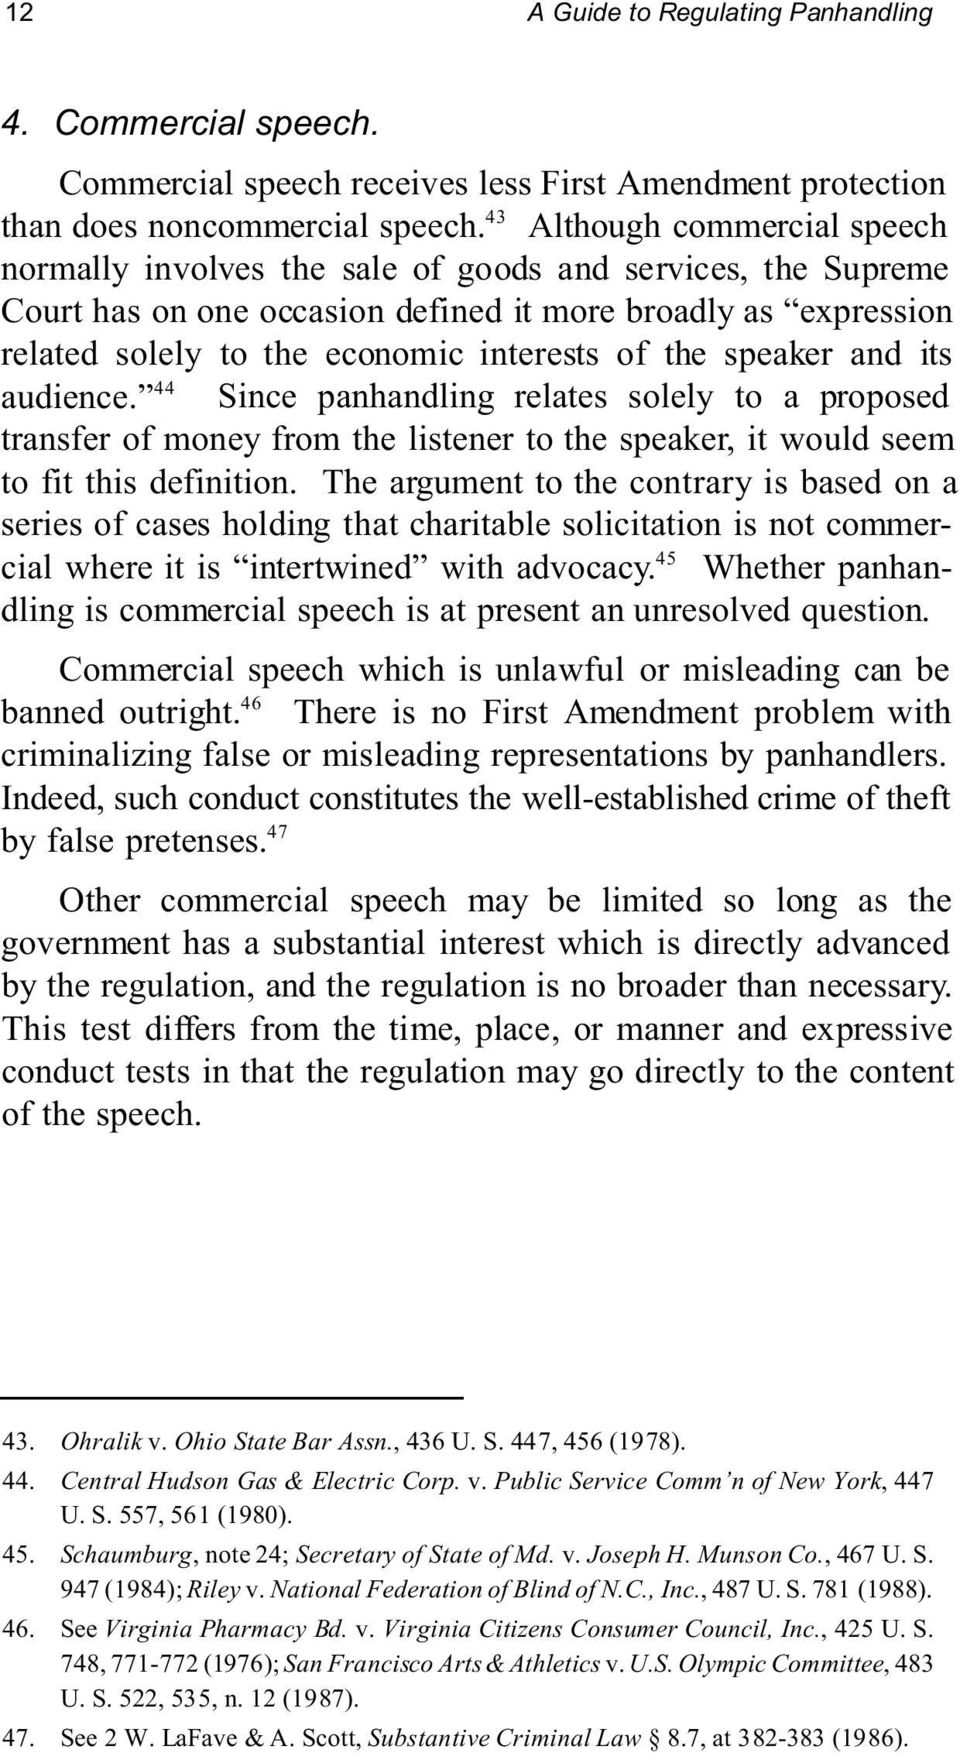 the speaker and its audience. 44 Since panhandling relates solely to a proposed transfer of money from the listener to the speaker, it would seem to fit this definition.